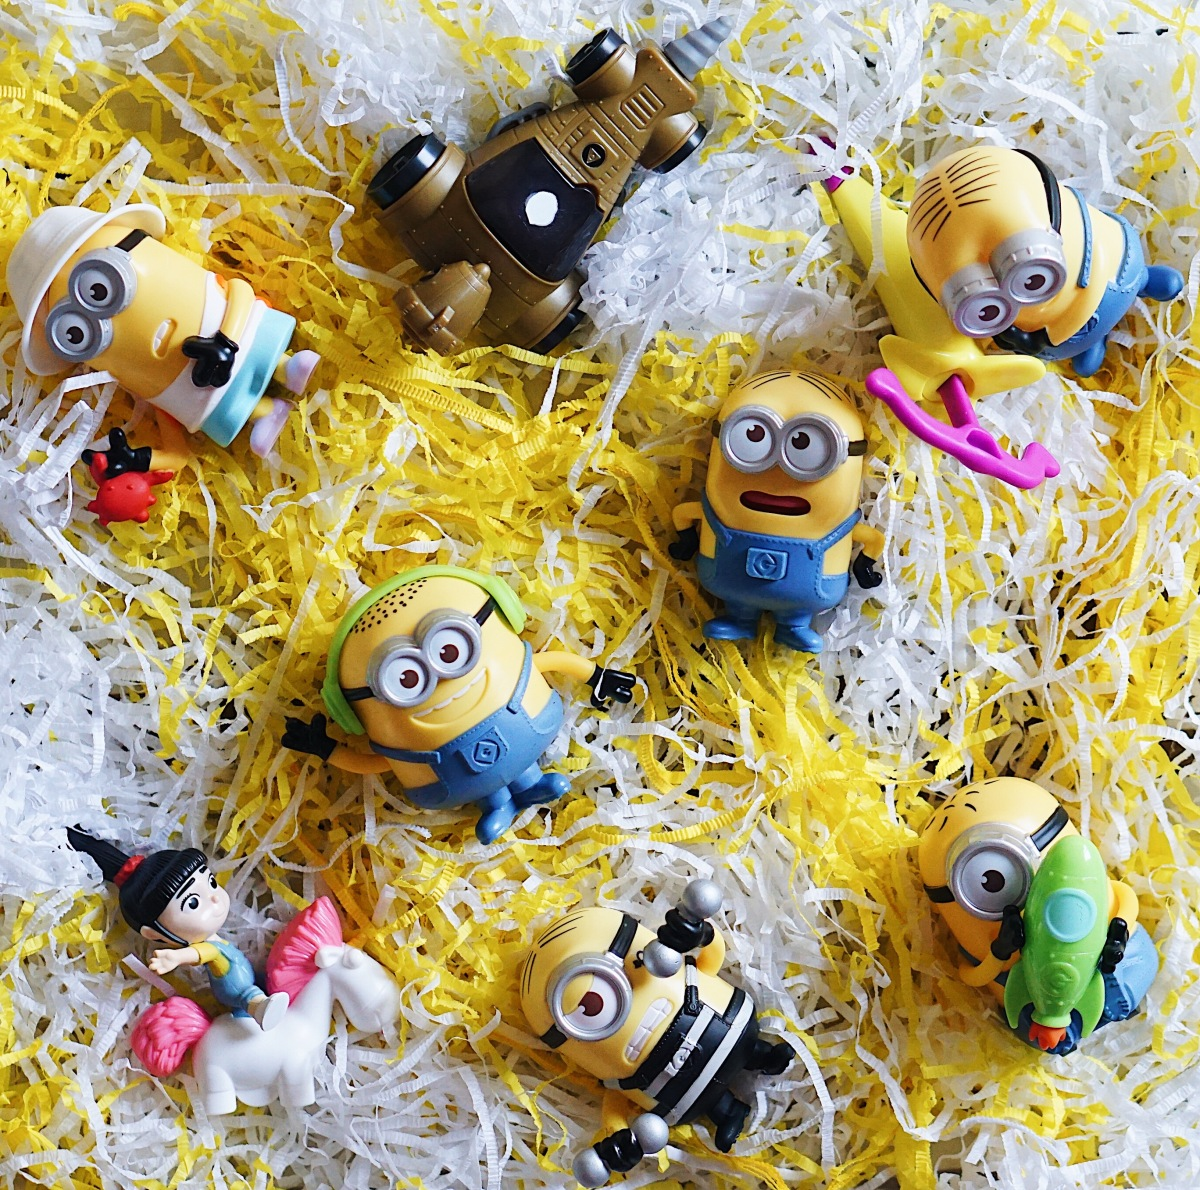 The Minions Craze is Back at McDonald's